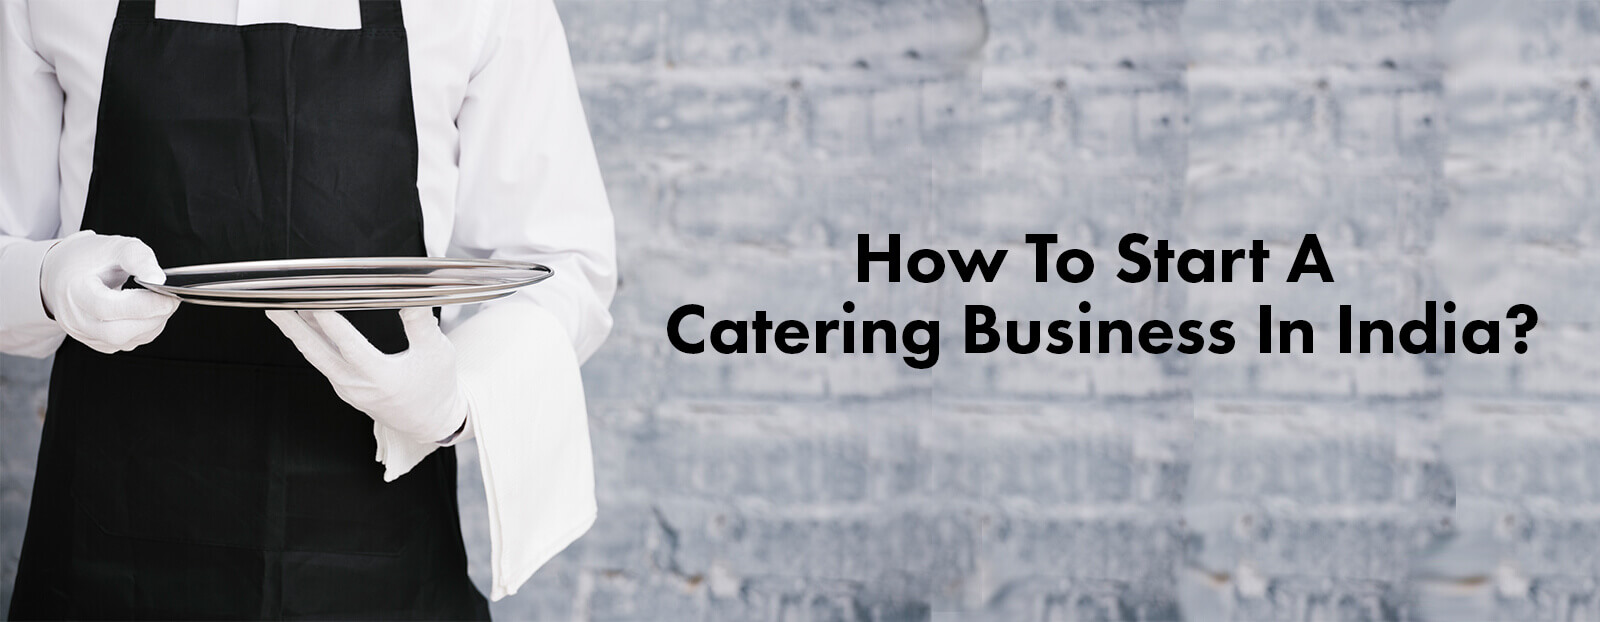 How To Start A Catering Business In India?